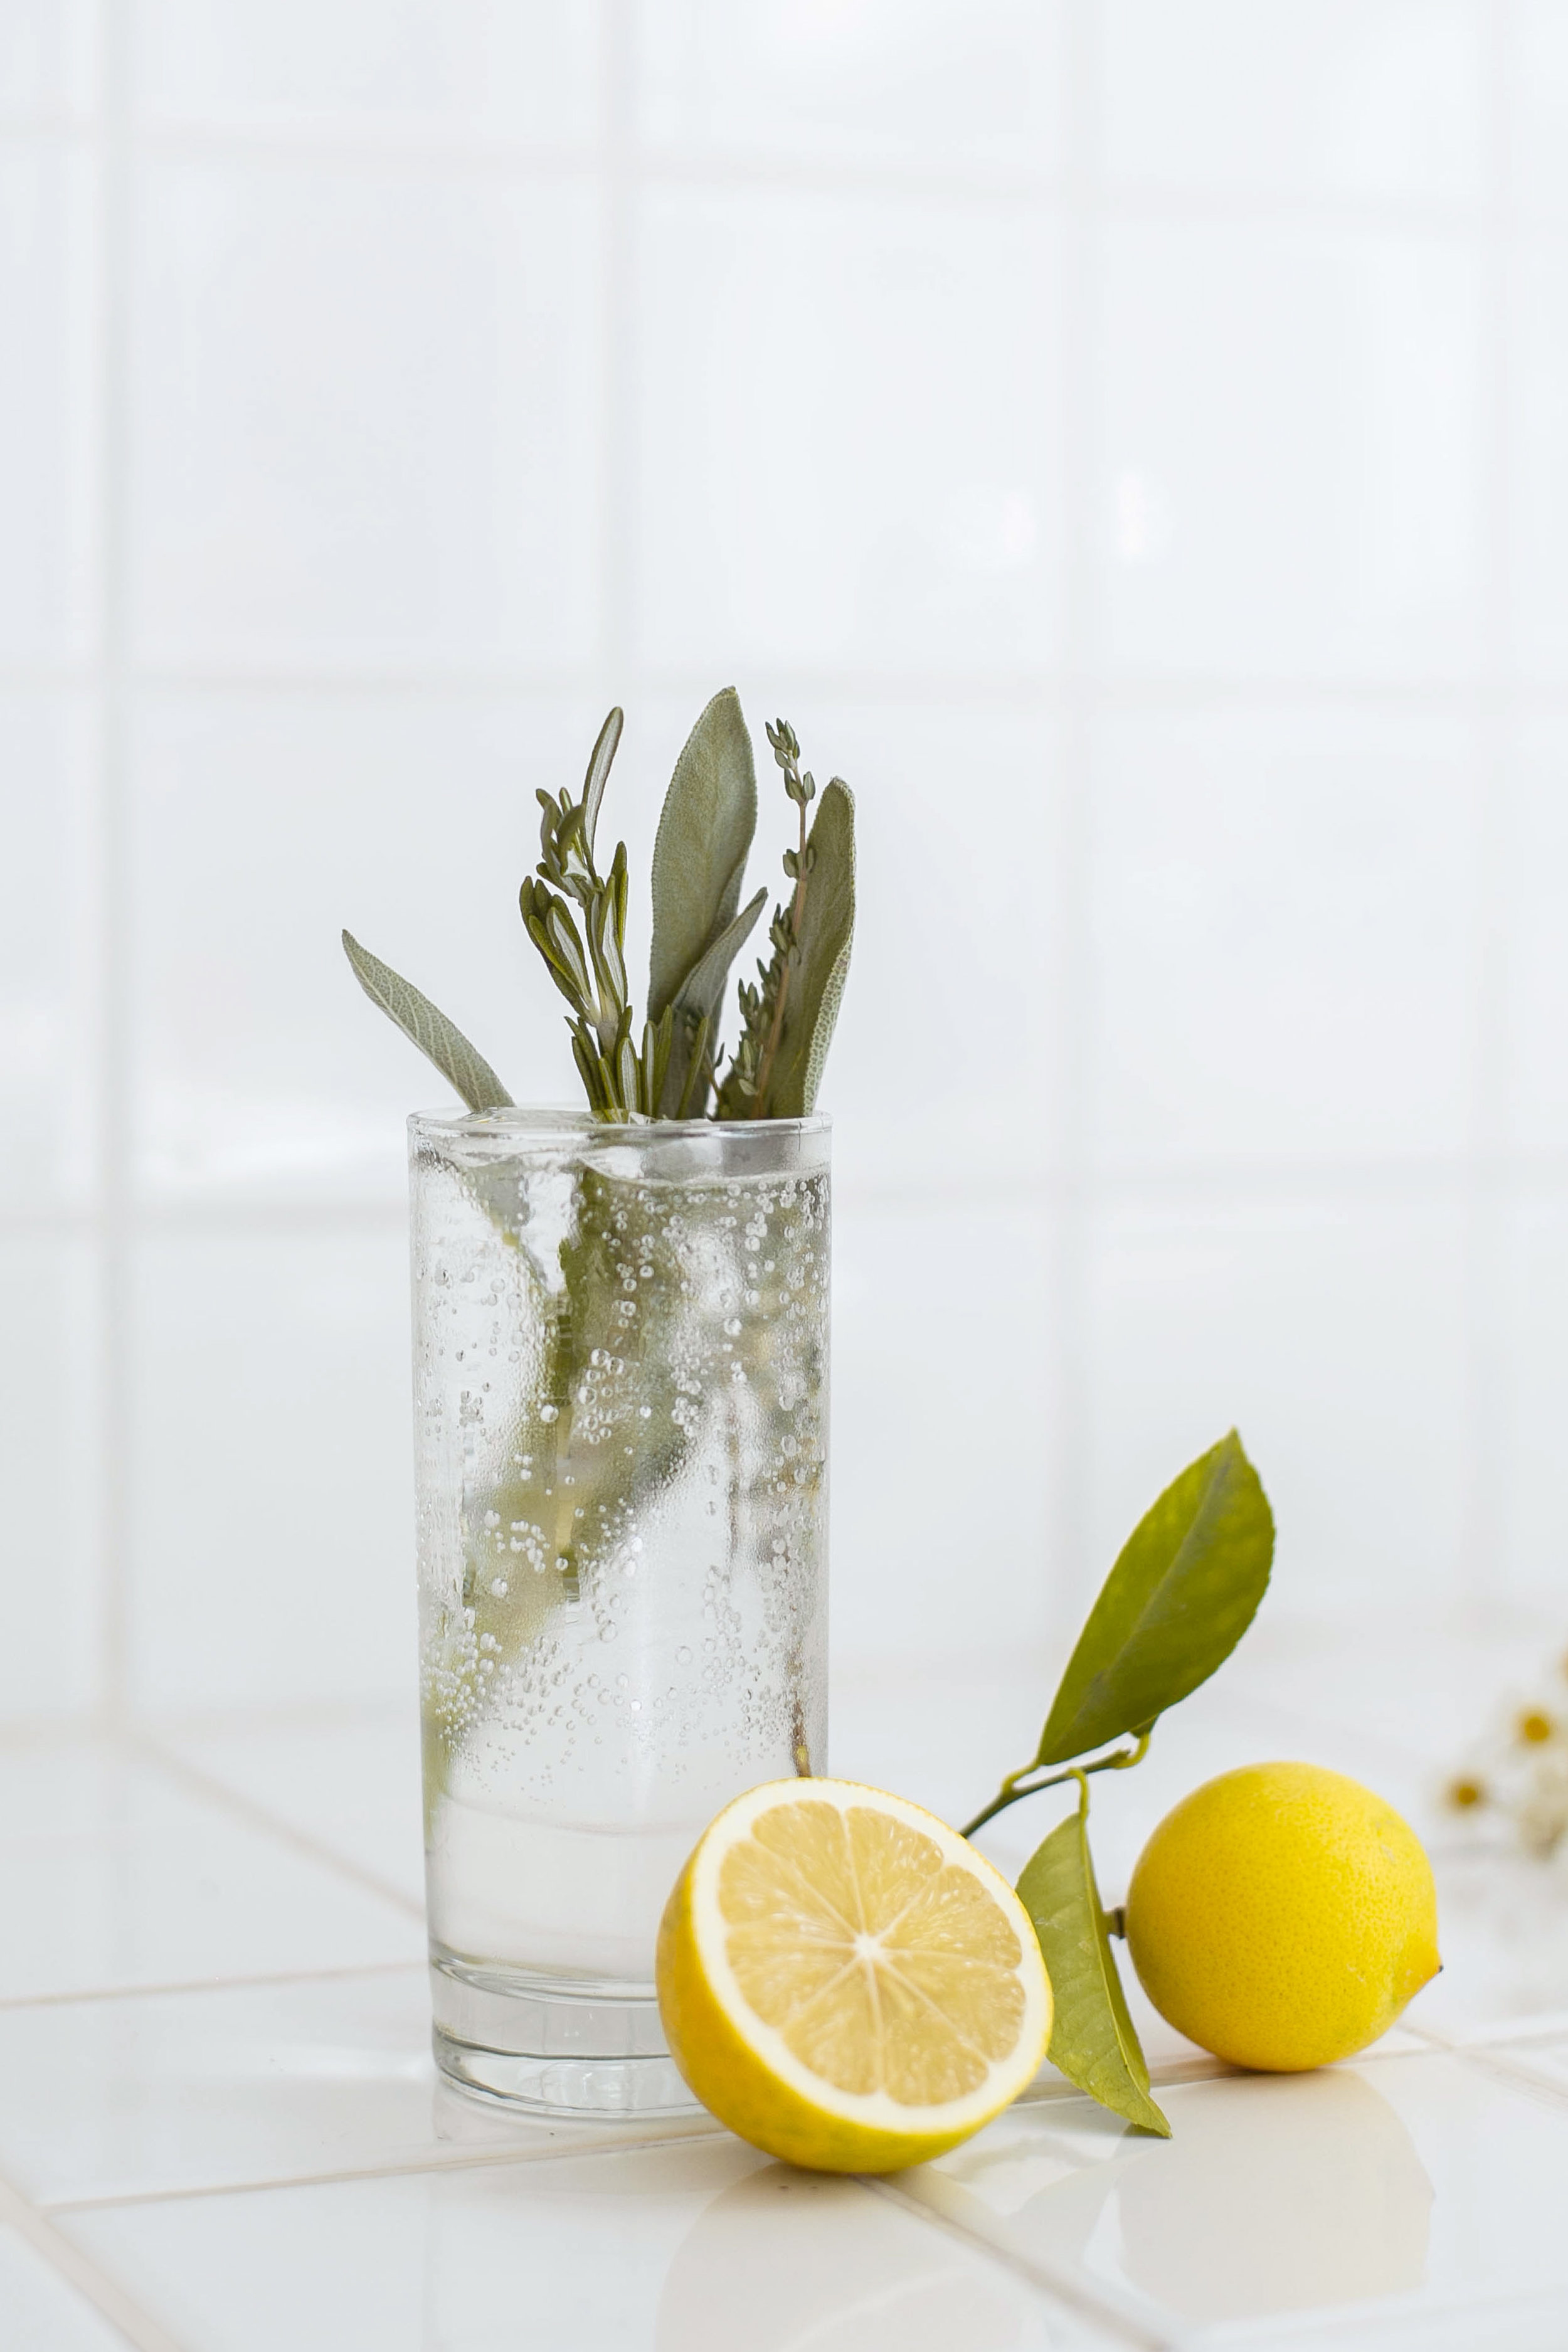 Garden Tonic - 4oz soda2oz ChareauBuild cocktail over ice. Garnish with fresh lemon or herbs.